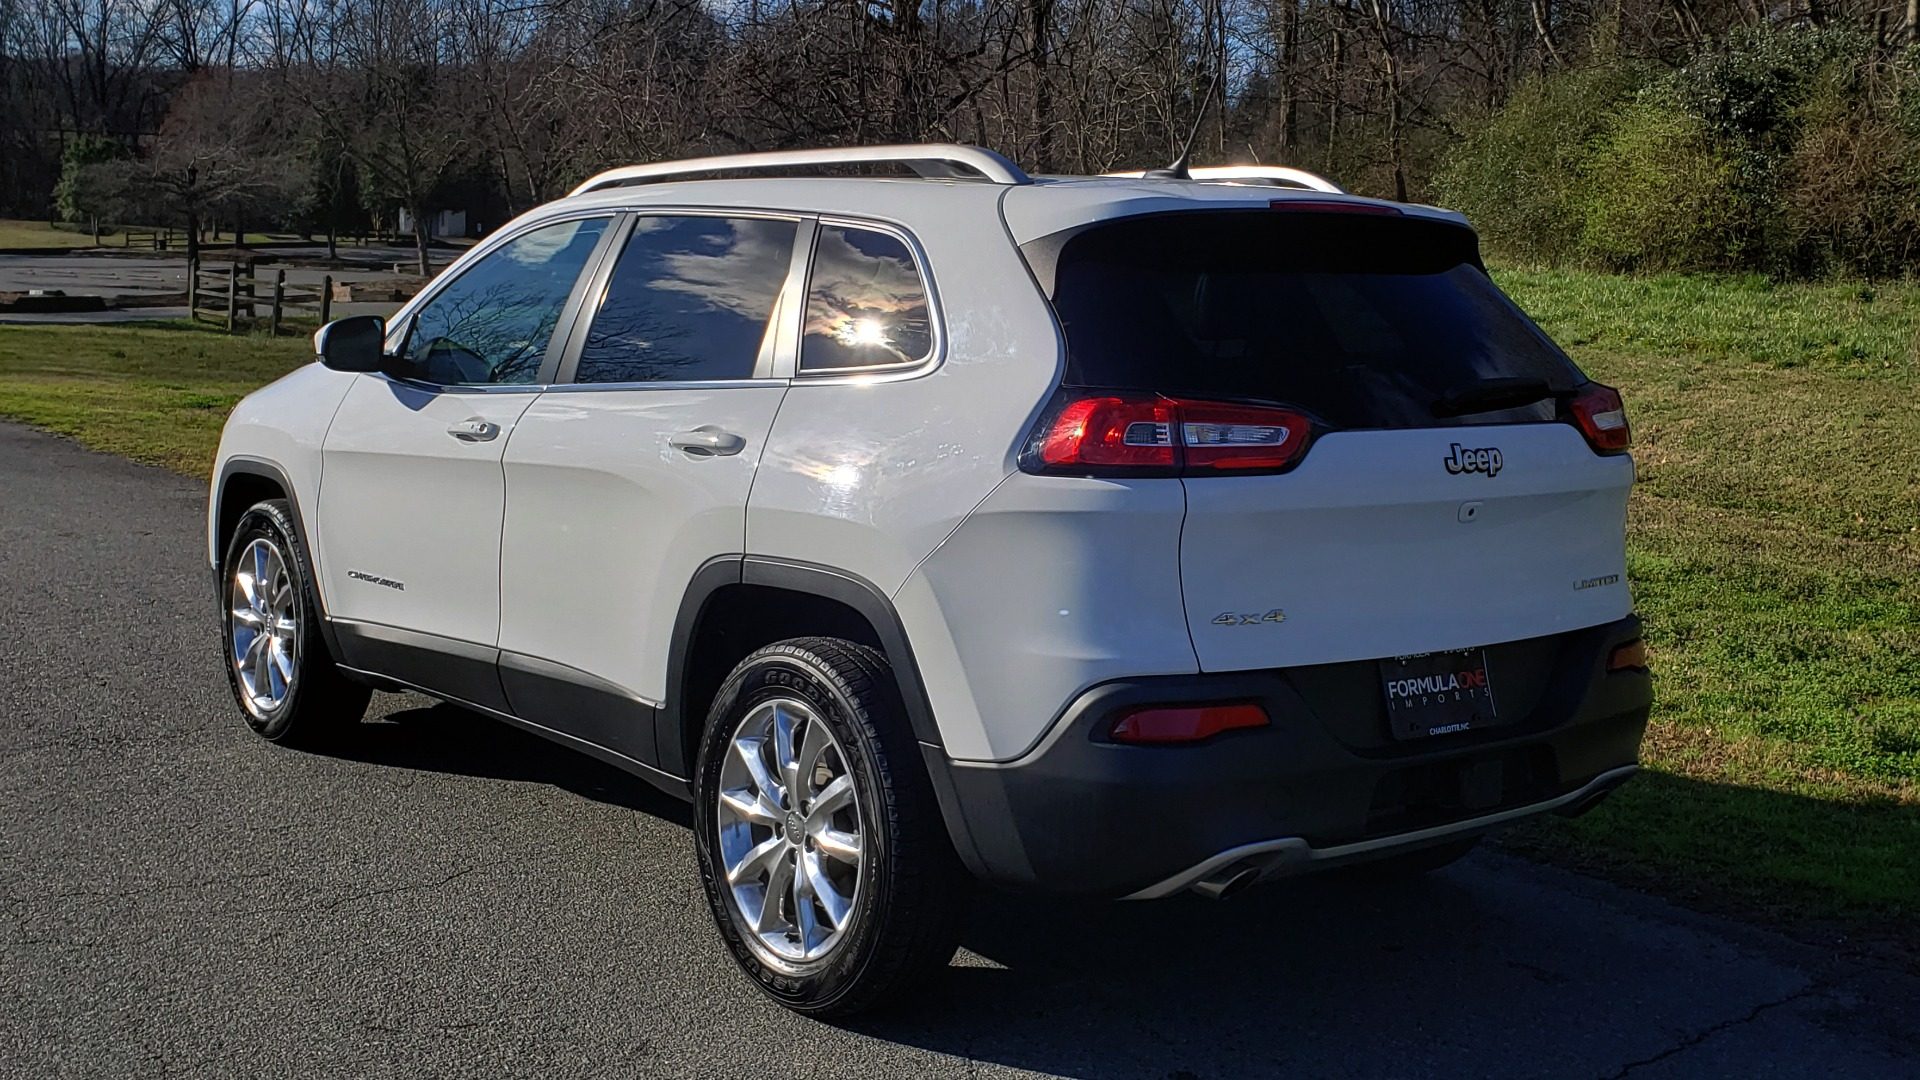 Used 2014 Jeep CHEROKEE LIMITED 4WD / 3.2L V6 / 9SPD AUTO / DUAL-SUNROOF / TOW for sale $18,995 at Formula Imports in Charlotte NC 28227 3